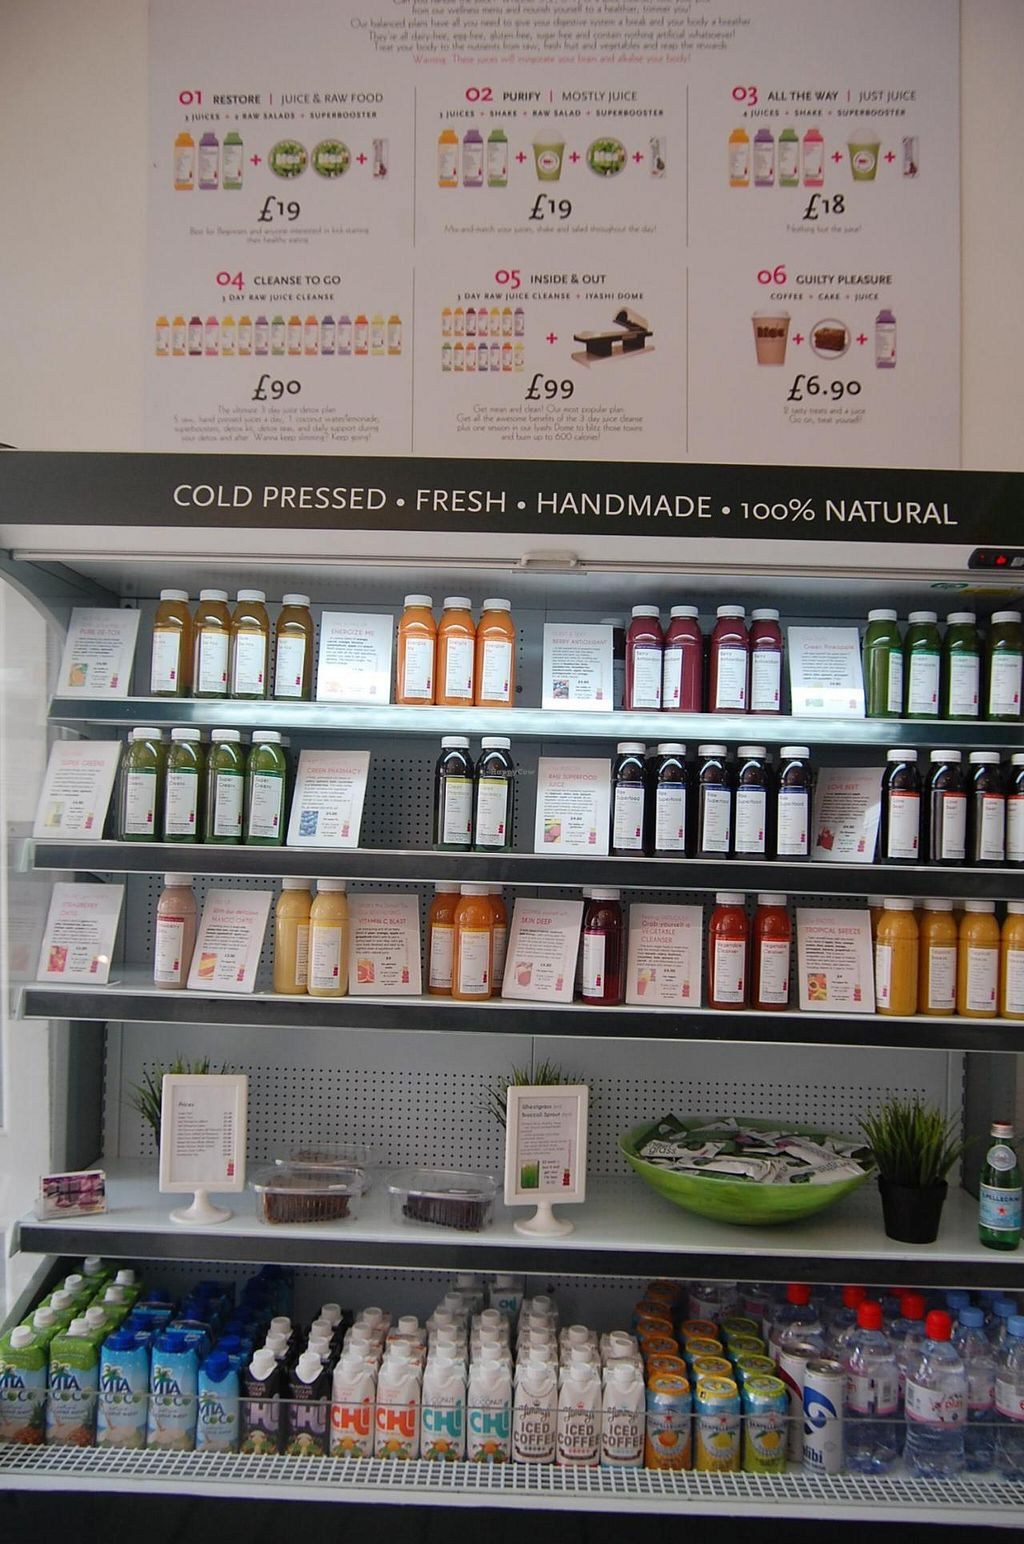 """Photo of Spa Juice Bar - Greenwich  by <a href=""""/members/profile/Clare"""">Clare</a> <br/>Fresh juices (power up your life!!) <br/> June 18, 2015  - <a href='/contact/abuse/image/52958/106413'>Report</a>"""